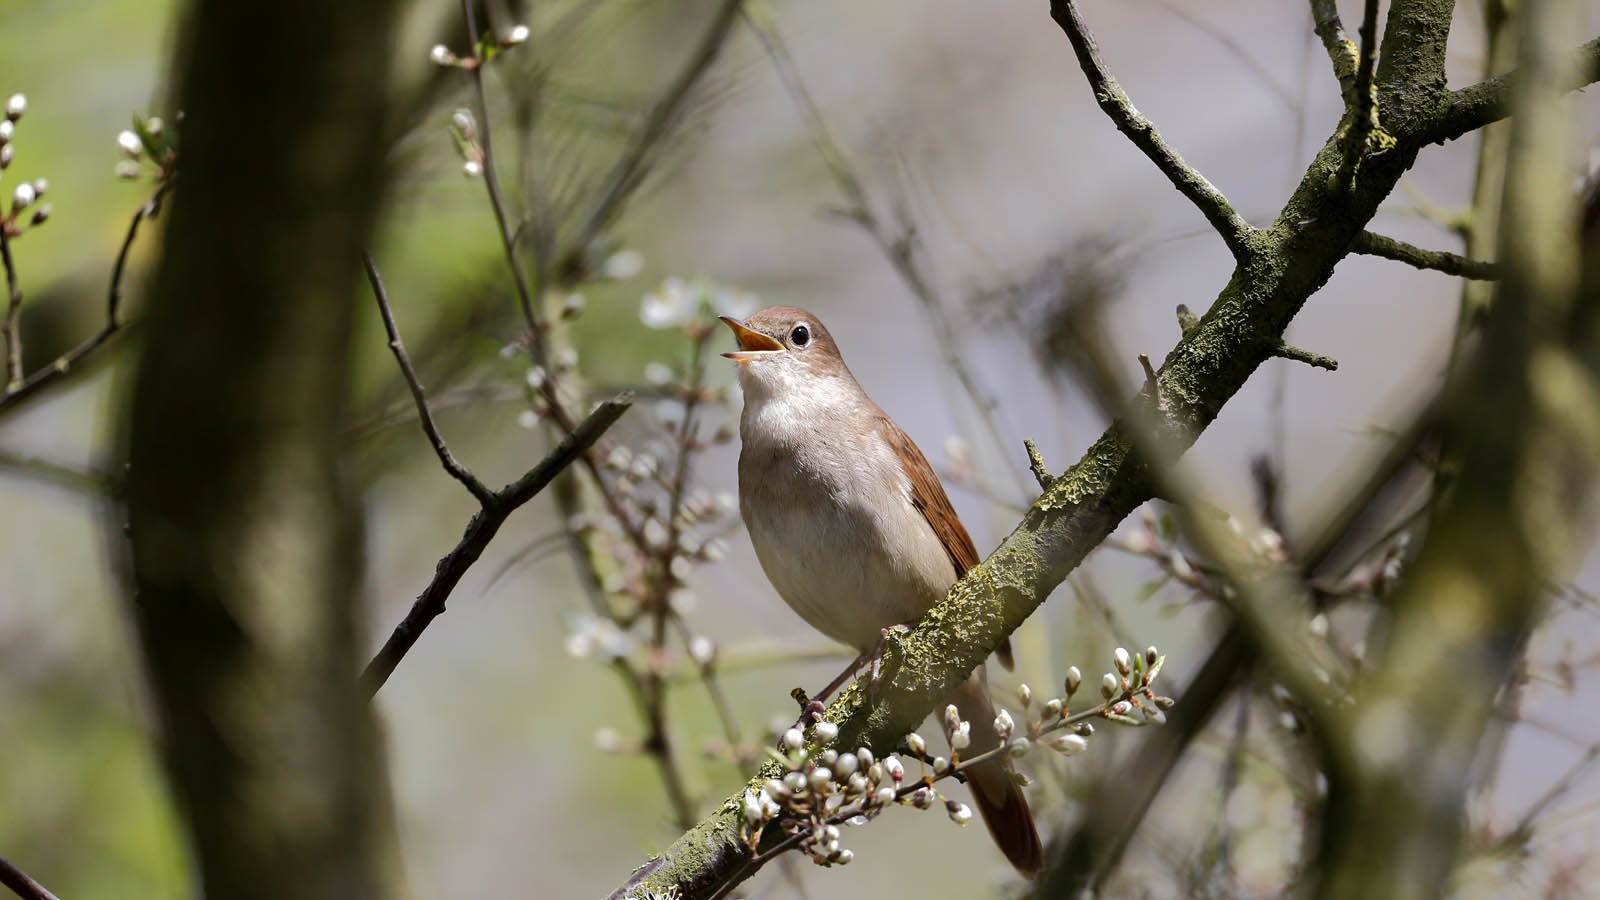 A nightingale sat on a branch of a tree